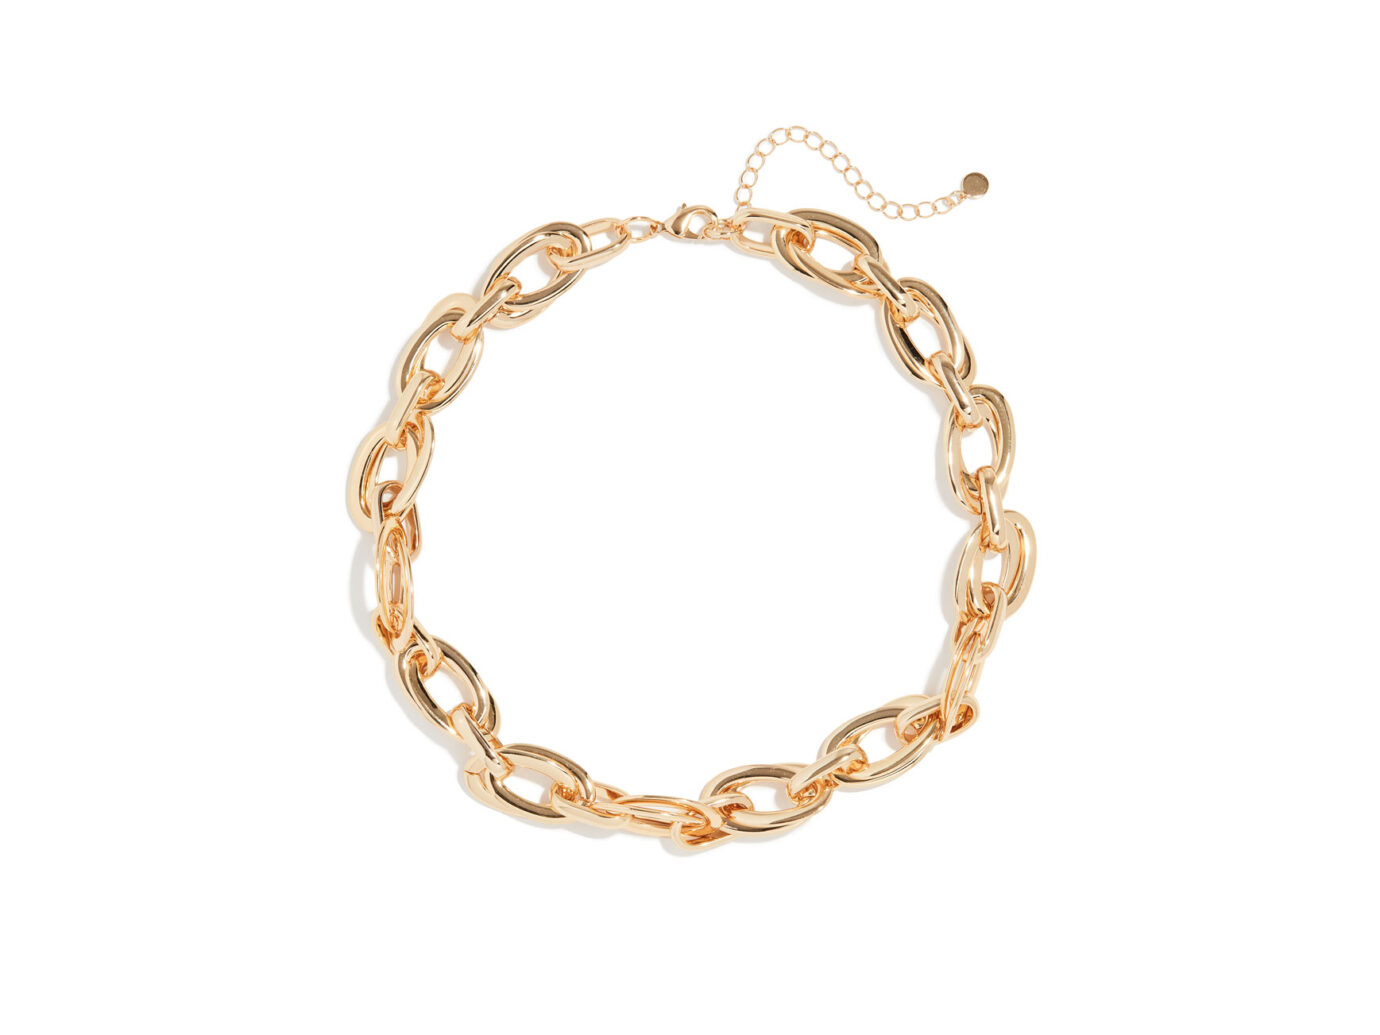 Jules Smith In Chains Necklace